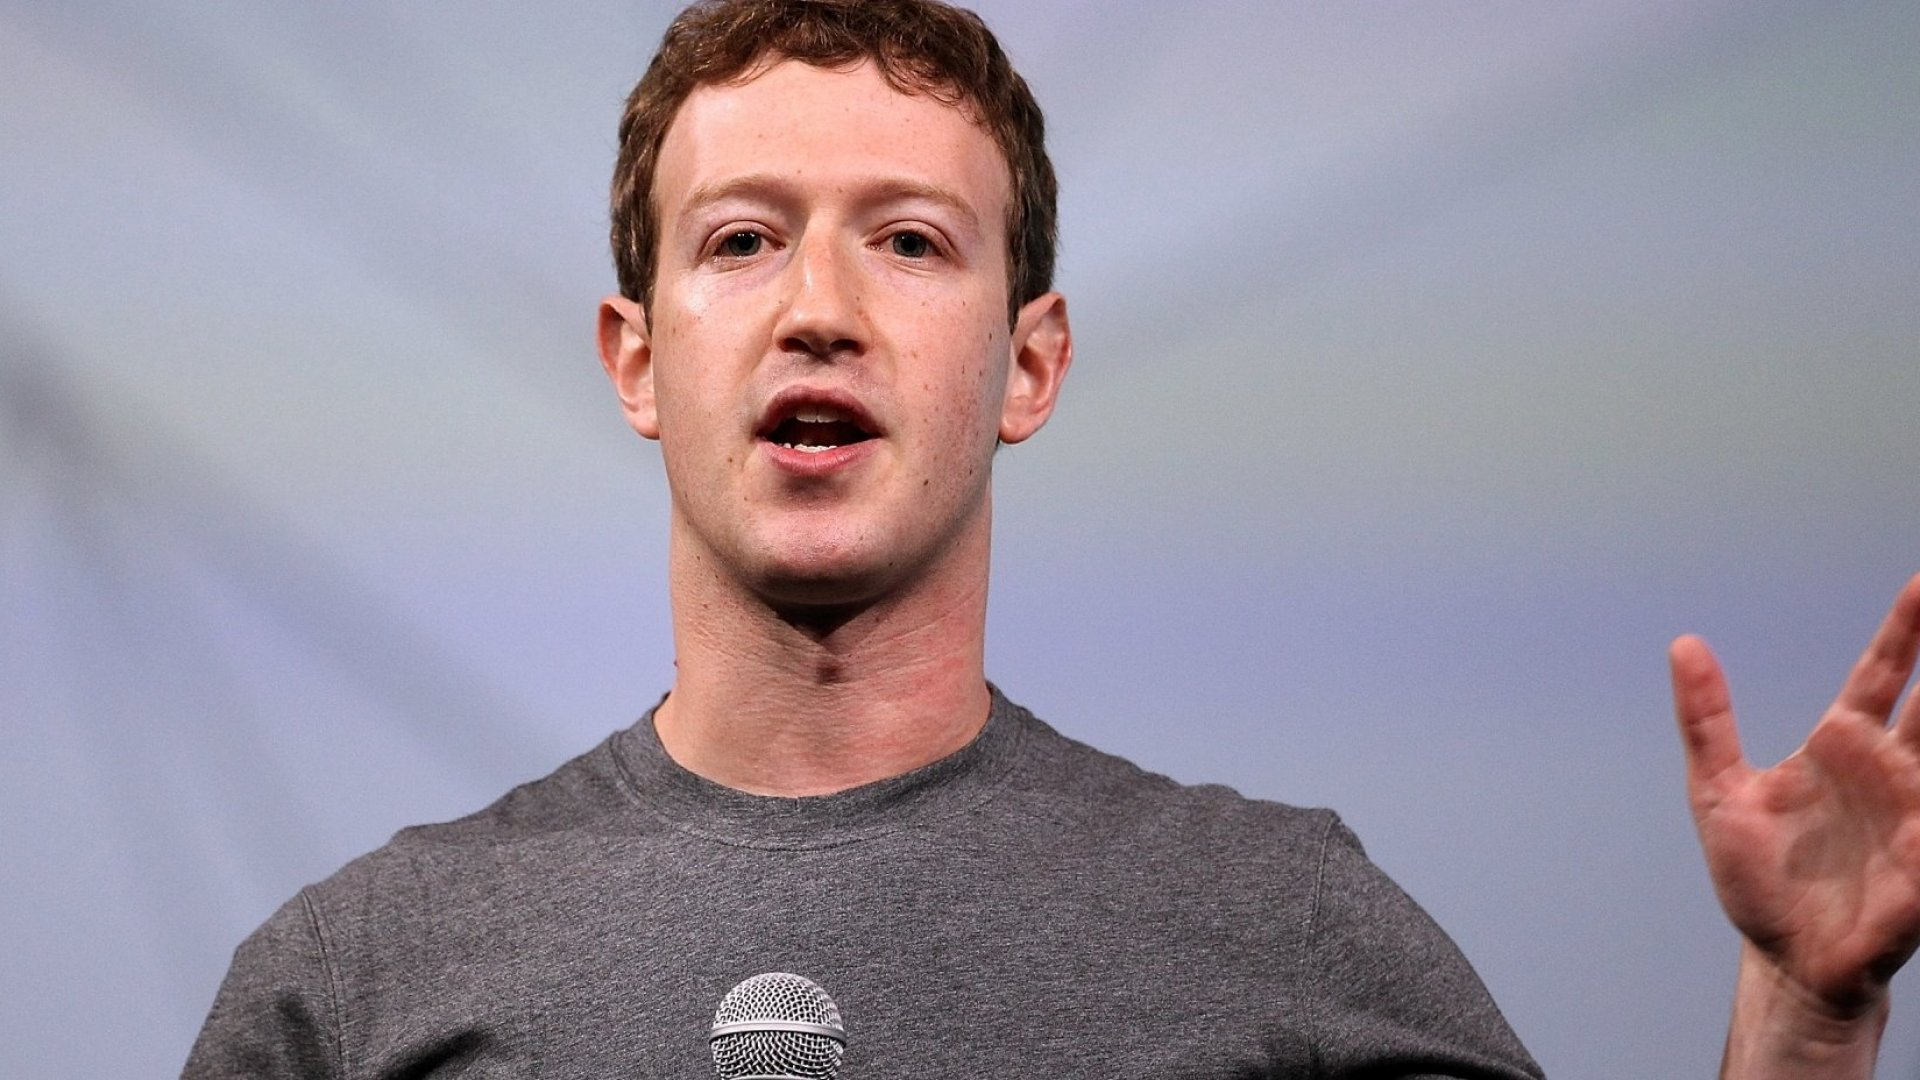 Why Facebook's Changes Shouldn't Scare Good Marketers